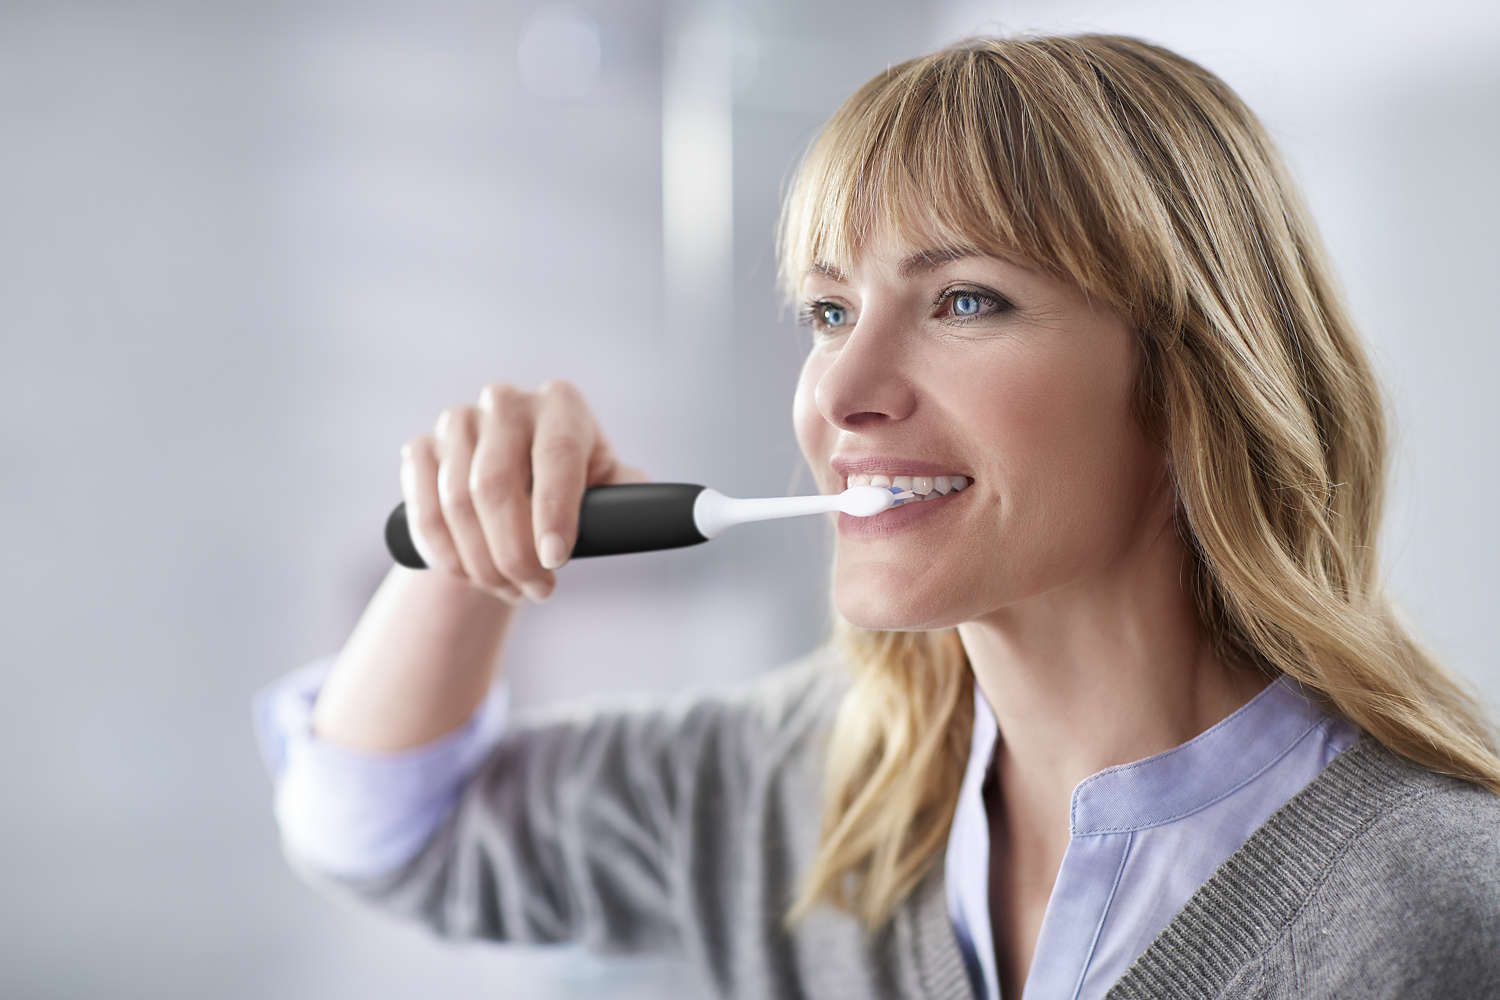 Philips Sonicare ProtectiveClean 5100 - woman brushing her teeth